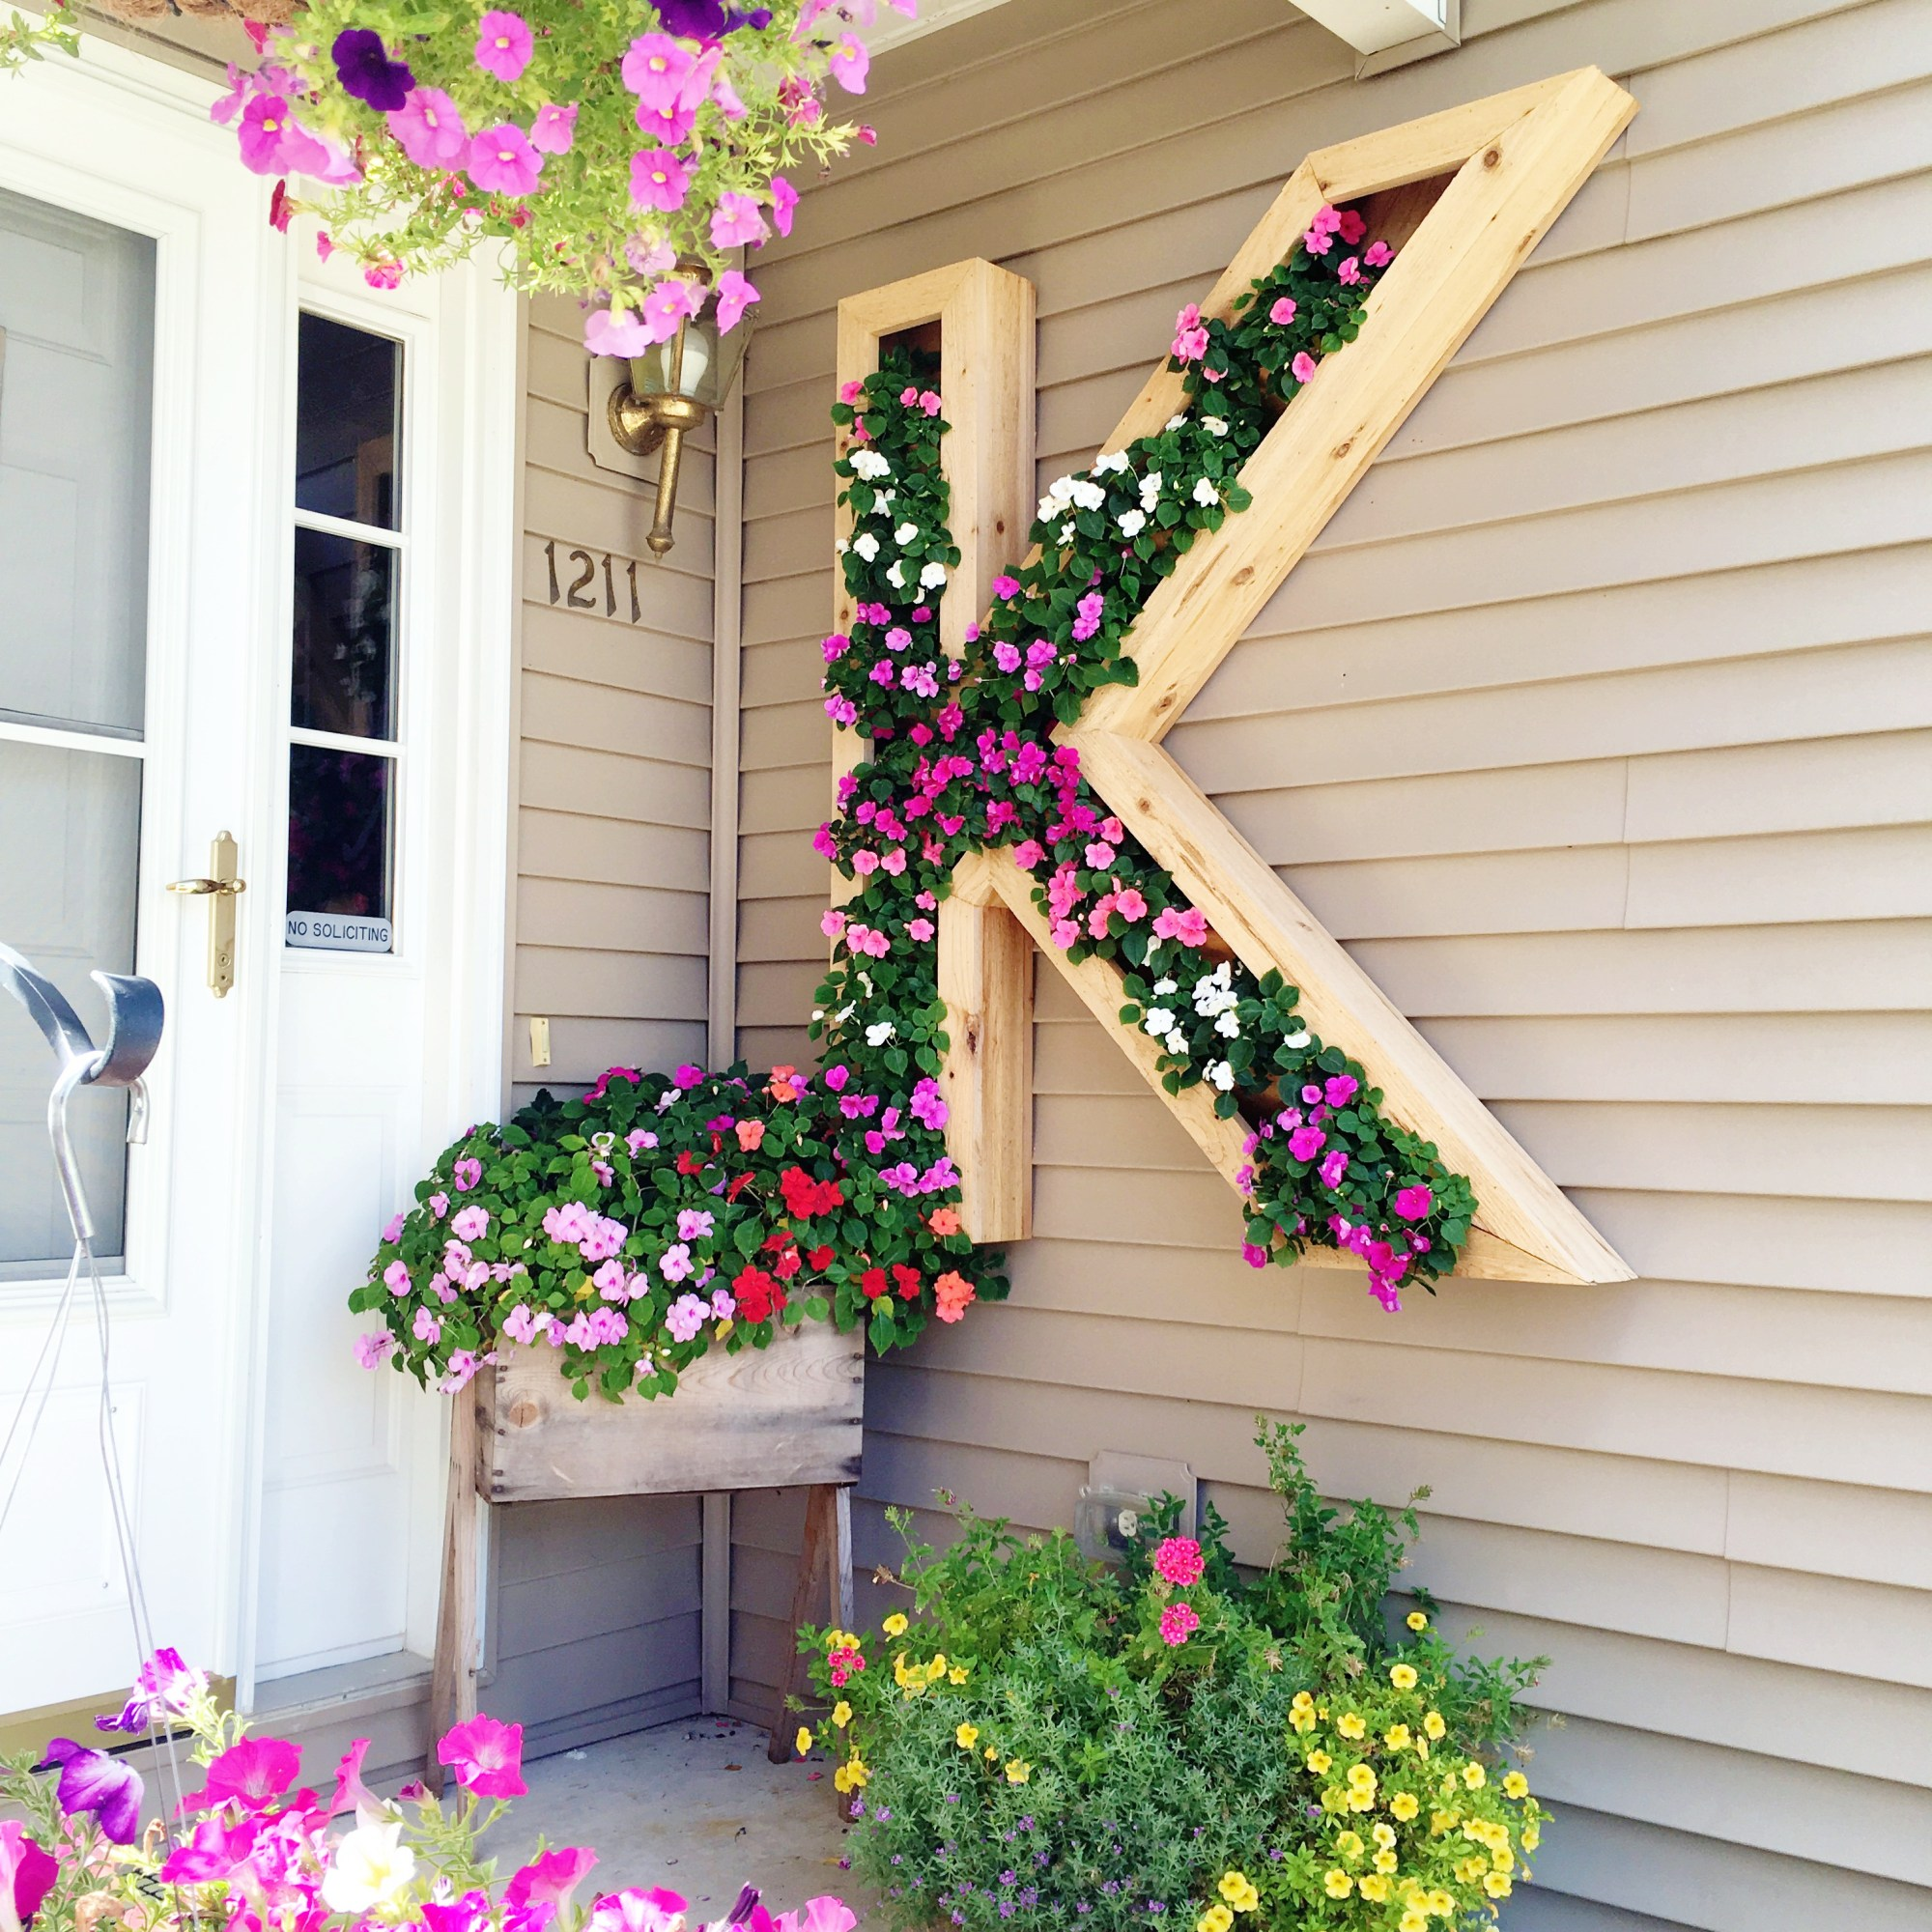 DIY projects for outdoors